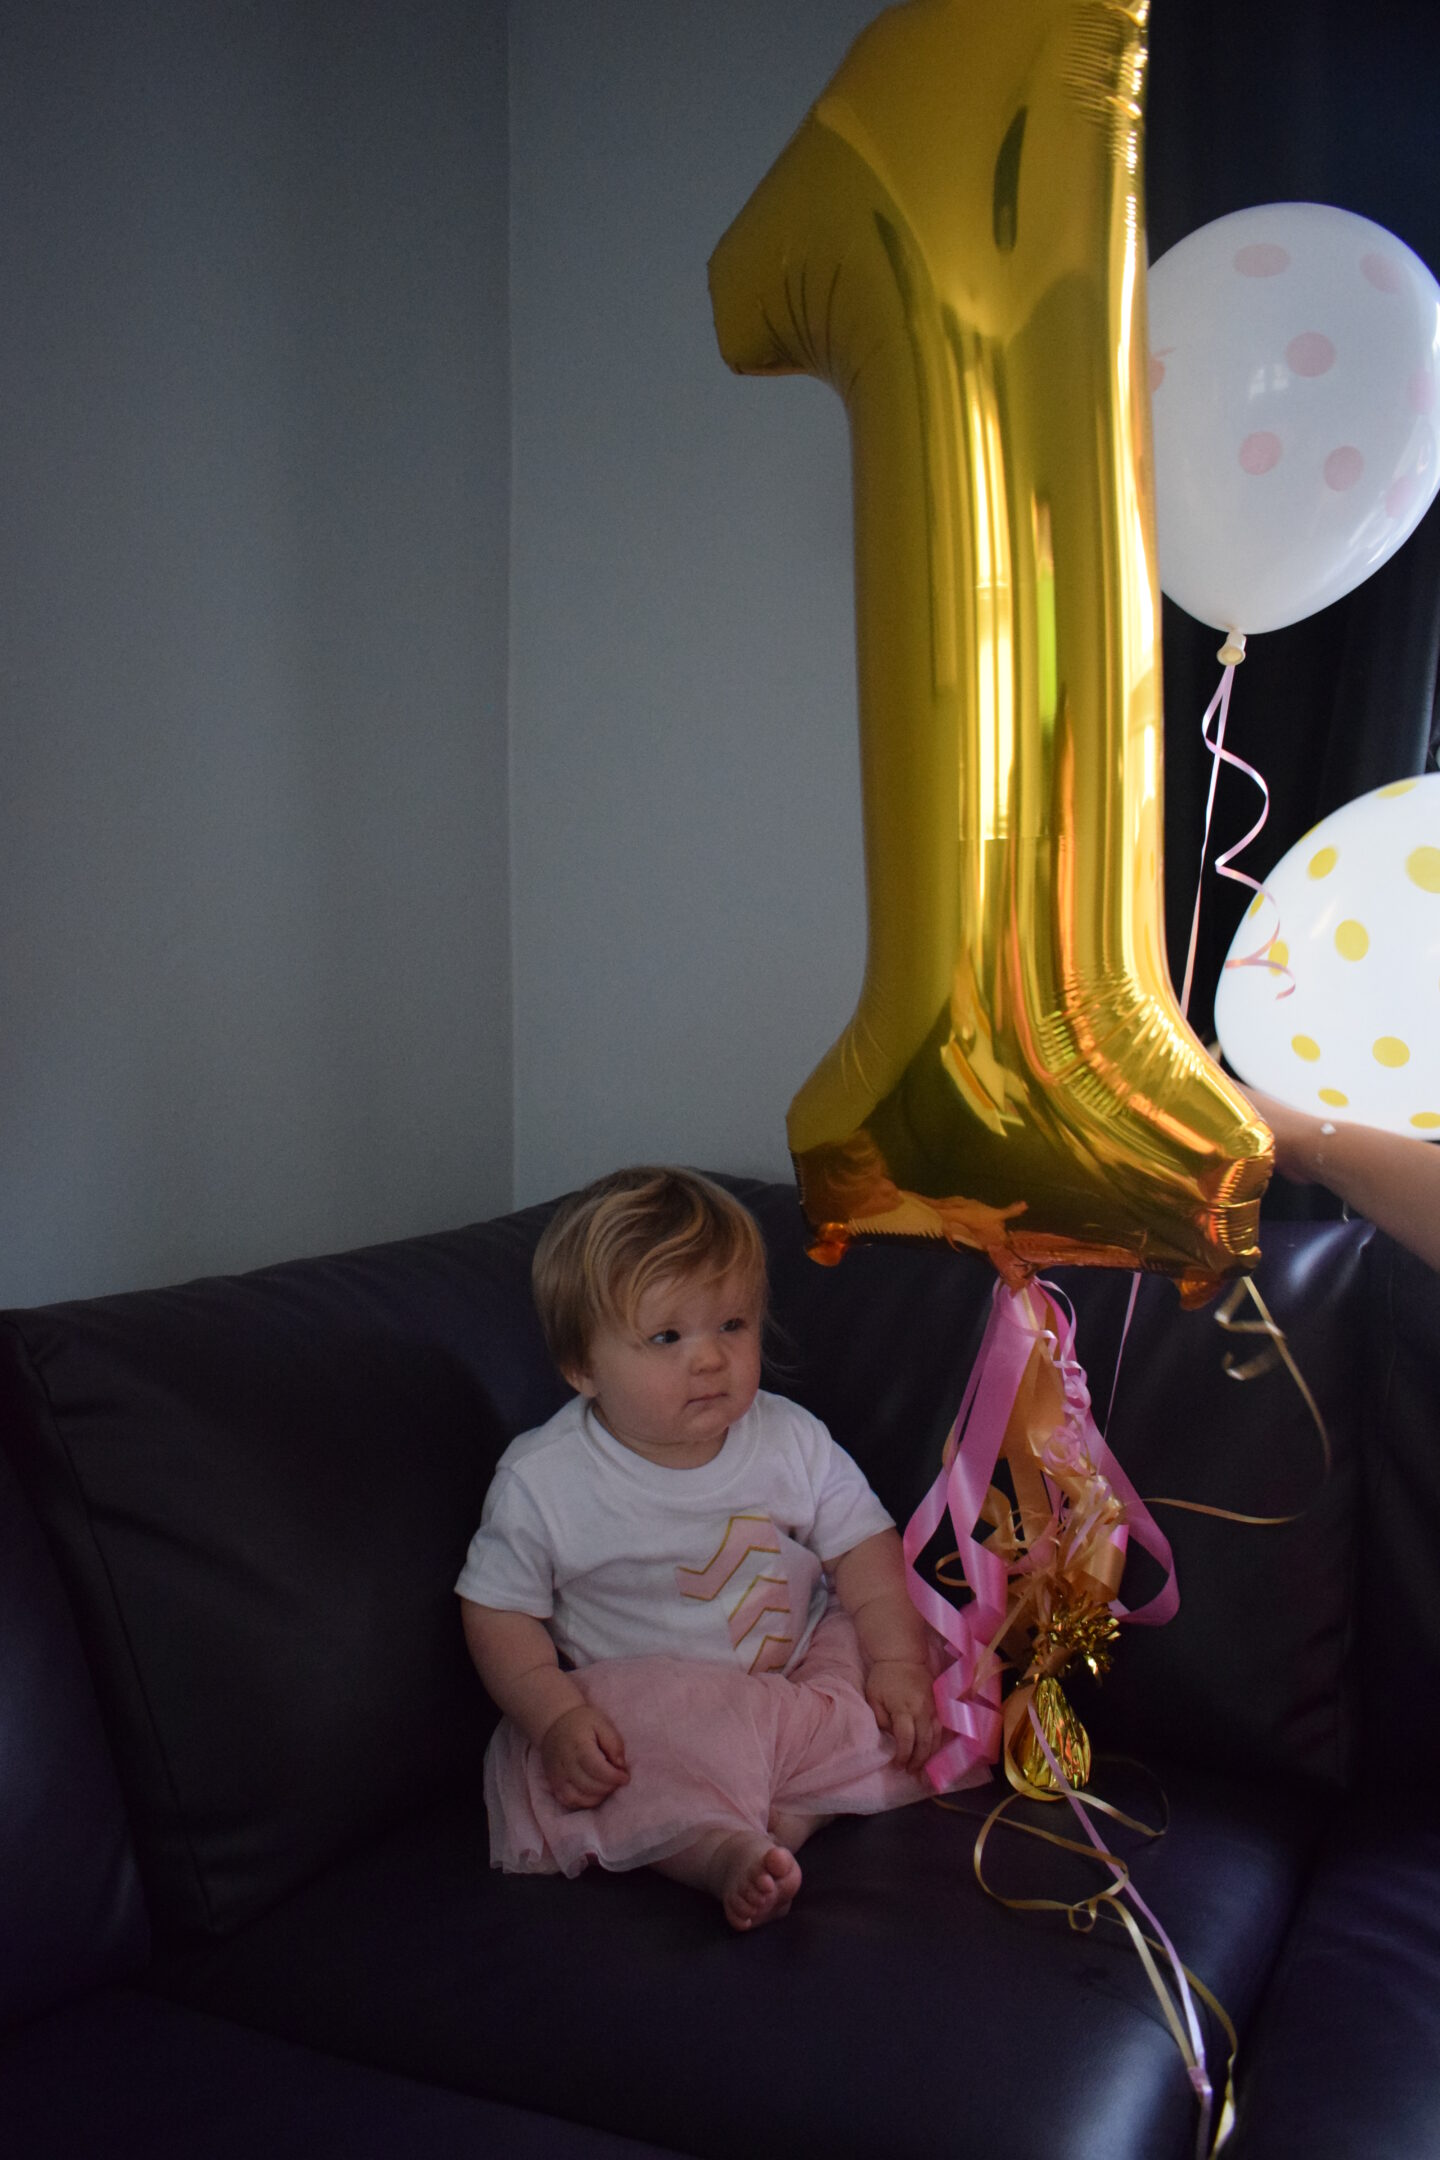 Lottie's first birthday celebrations